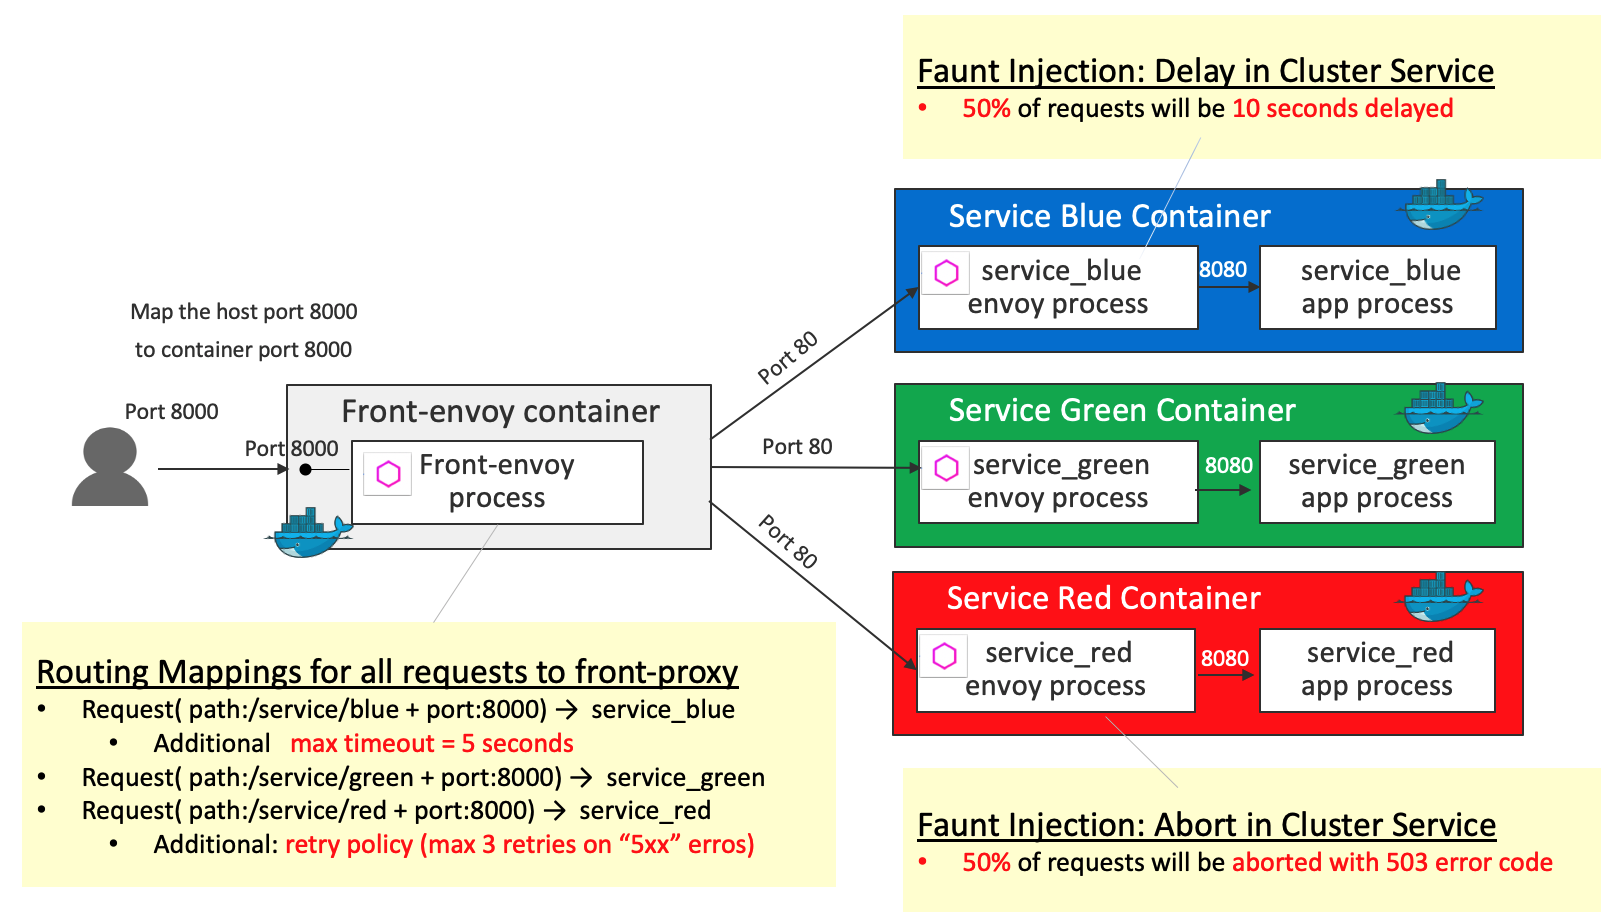 Process Hosting Routes Requests Directly — ZwiftItaly